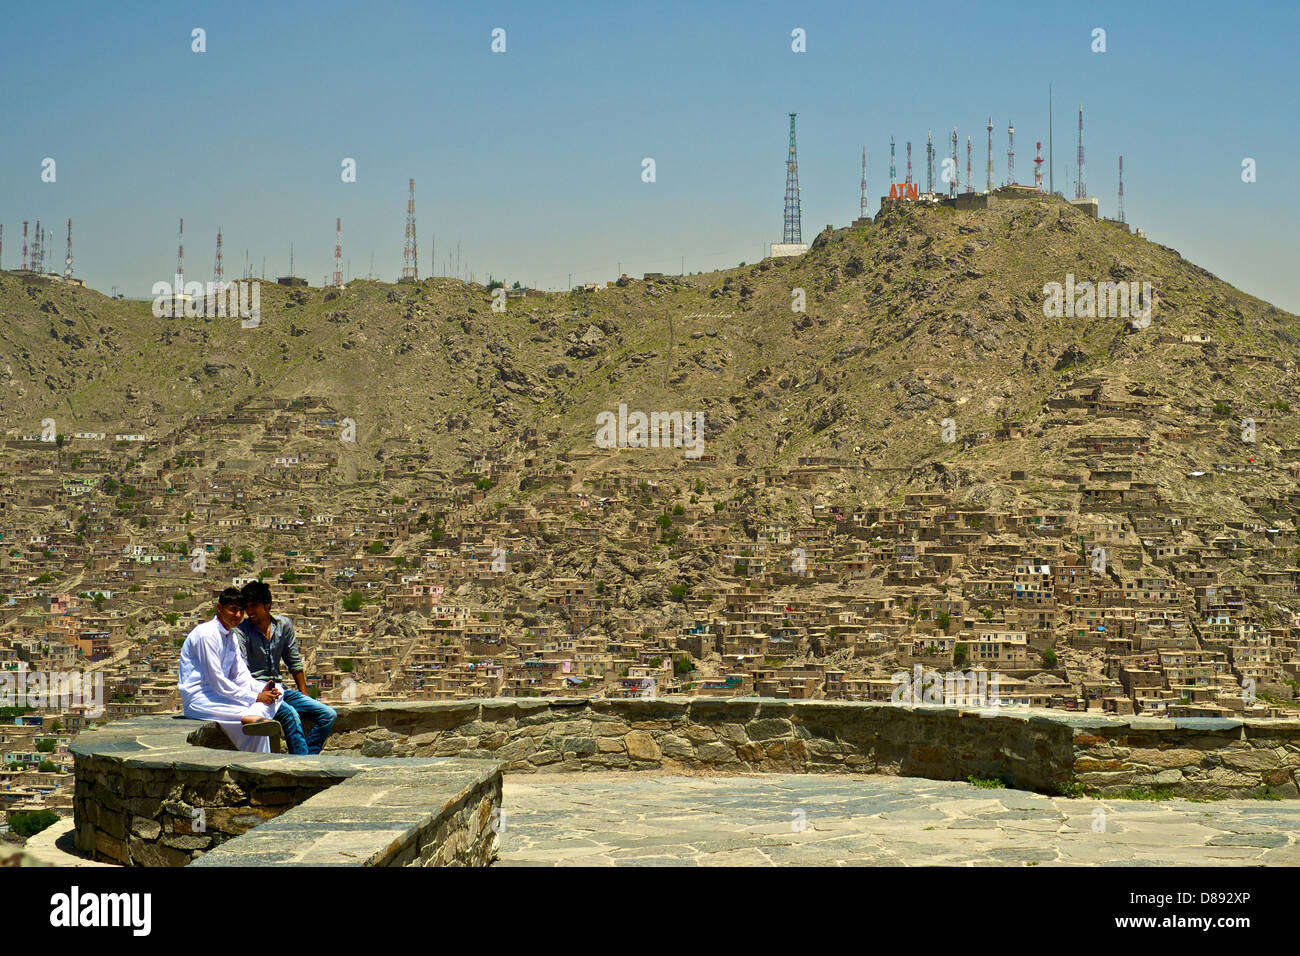 Kabul, Two Friends relax, with TV Hill in the background - Stock Image